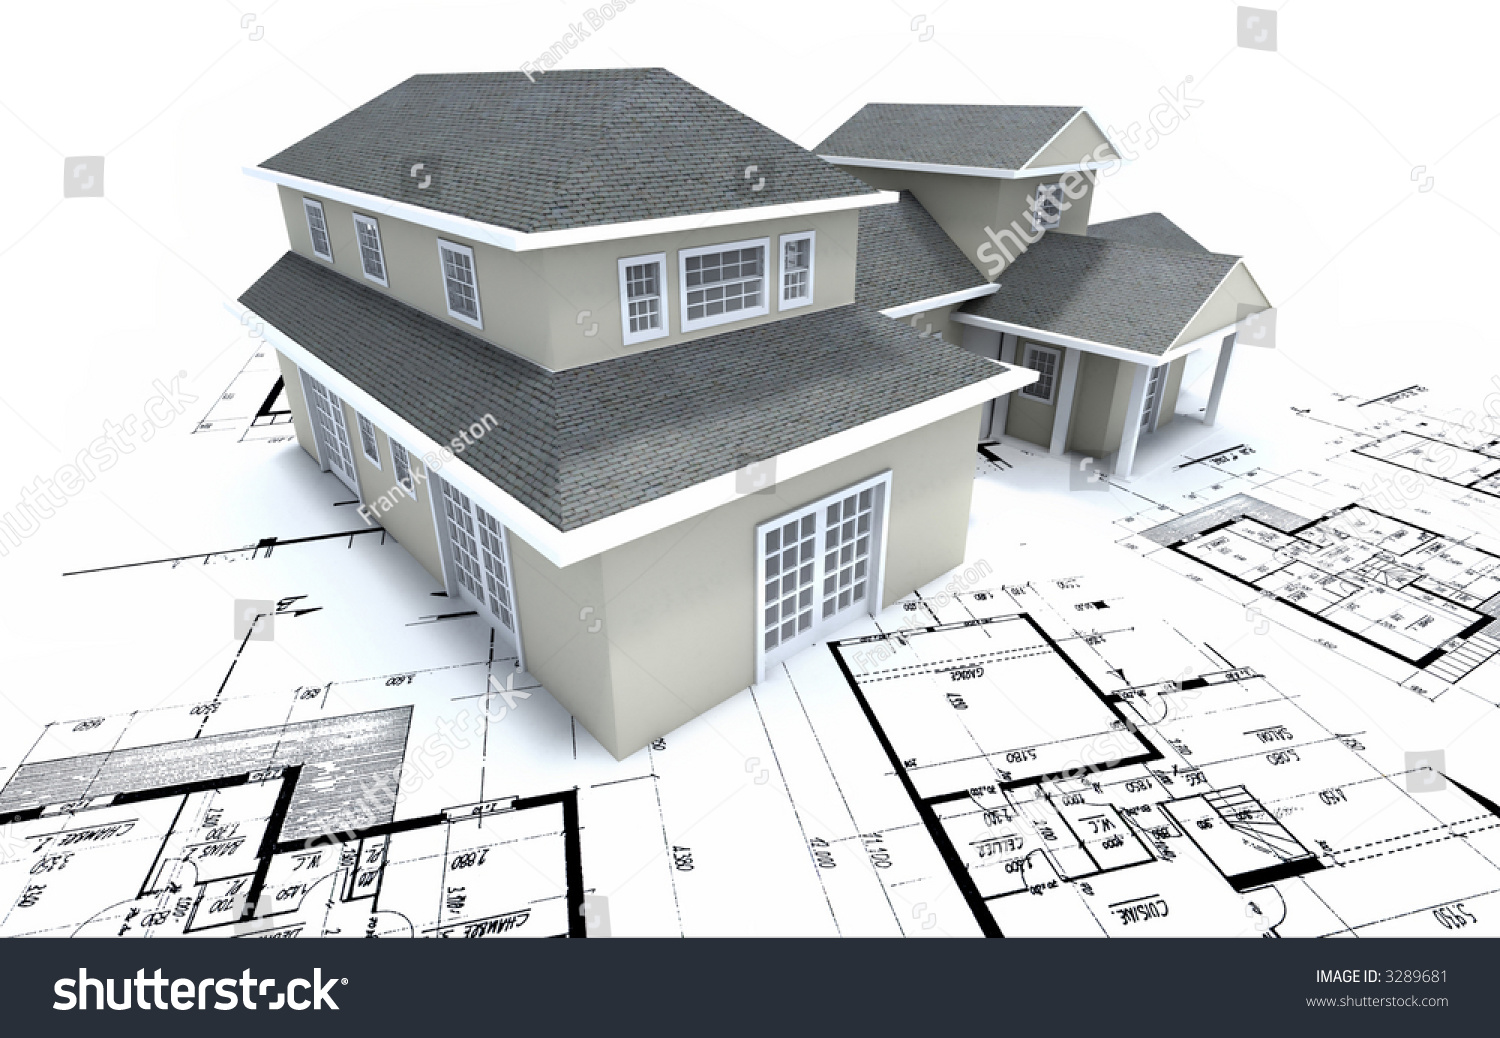 Residential House On Blueprints Stock Illustration 3289681